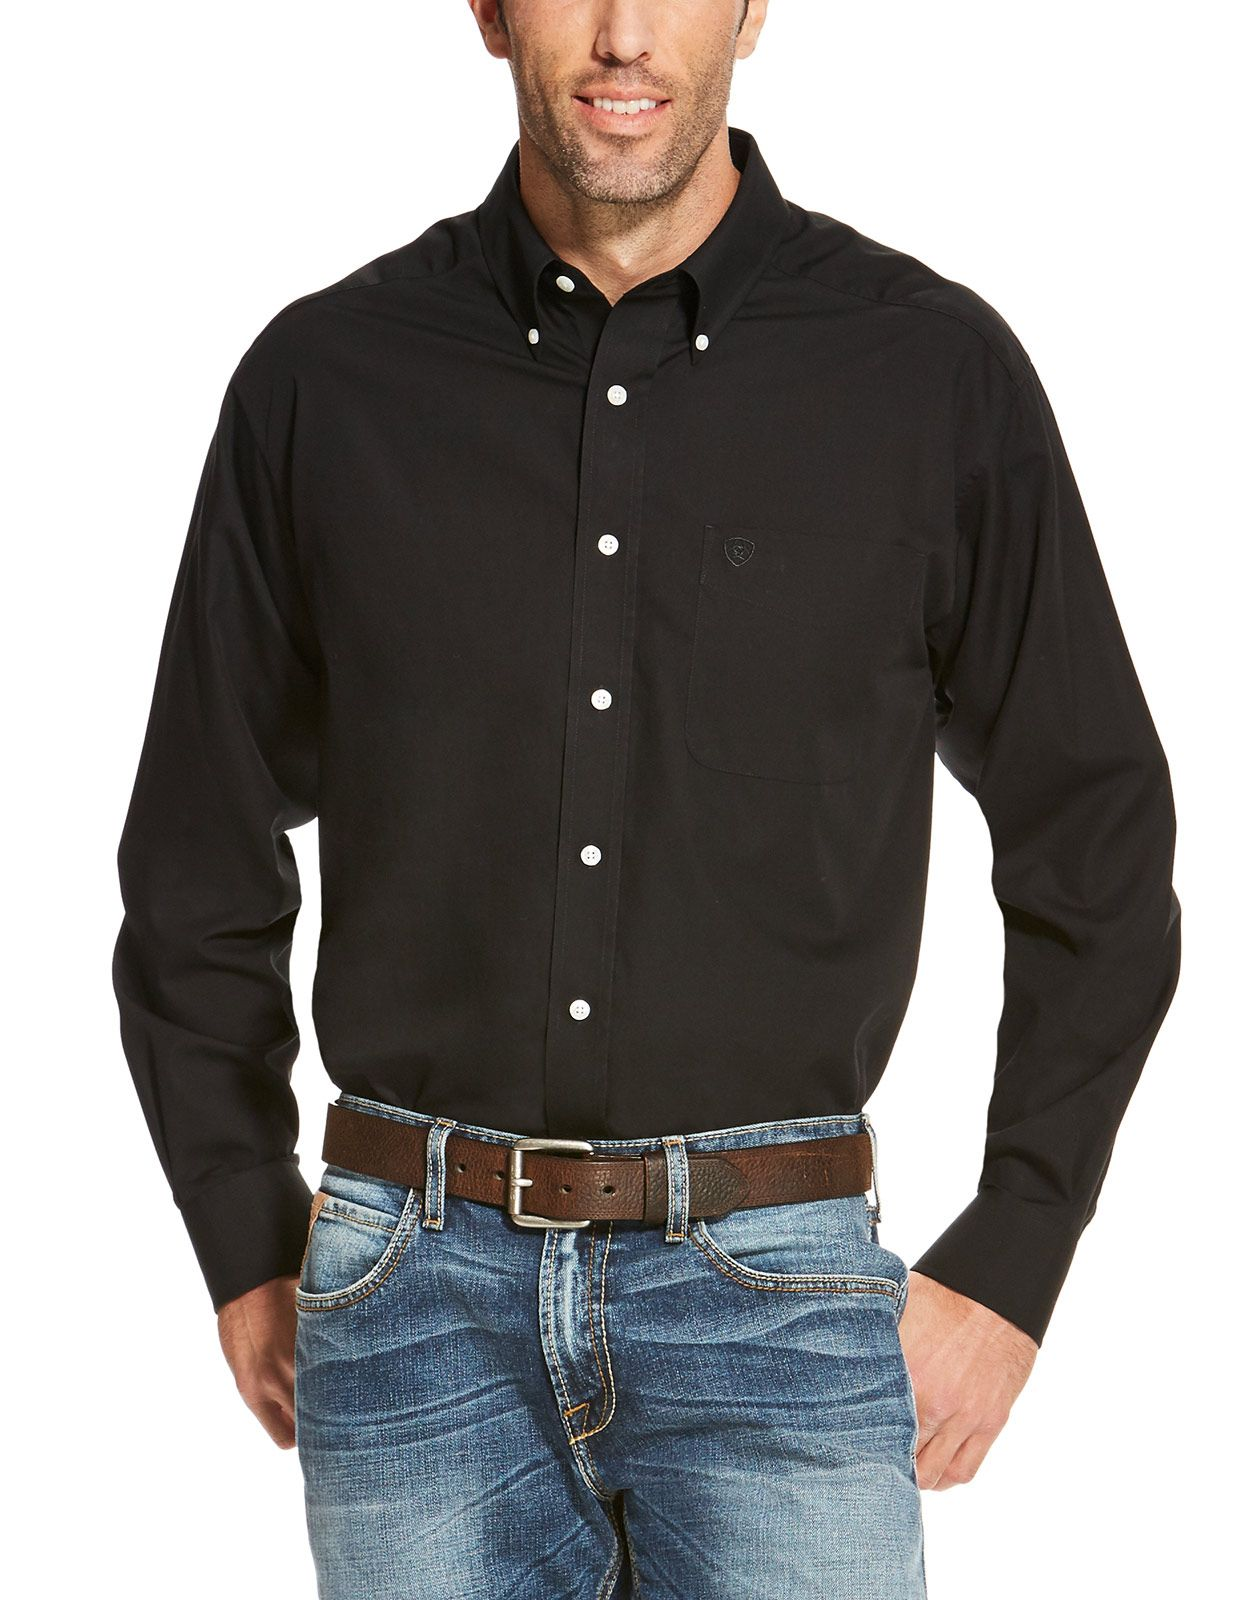 Ariat Men's Wrinkle Free Classic Fit Long Sleeve Solid Button Down Shirt - Black